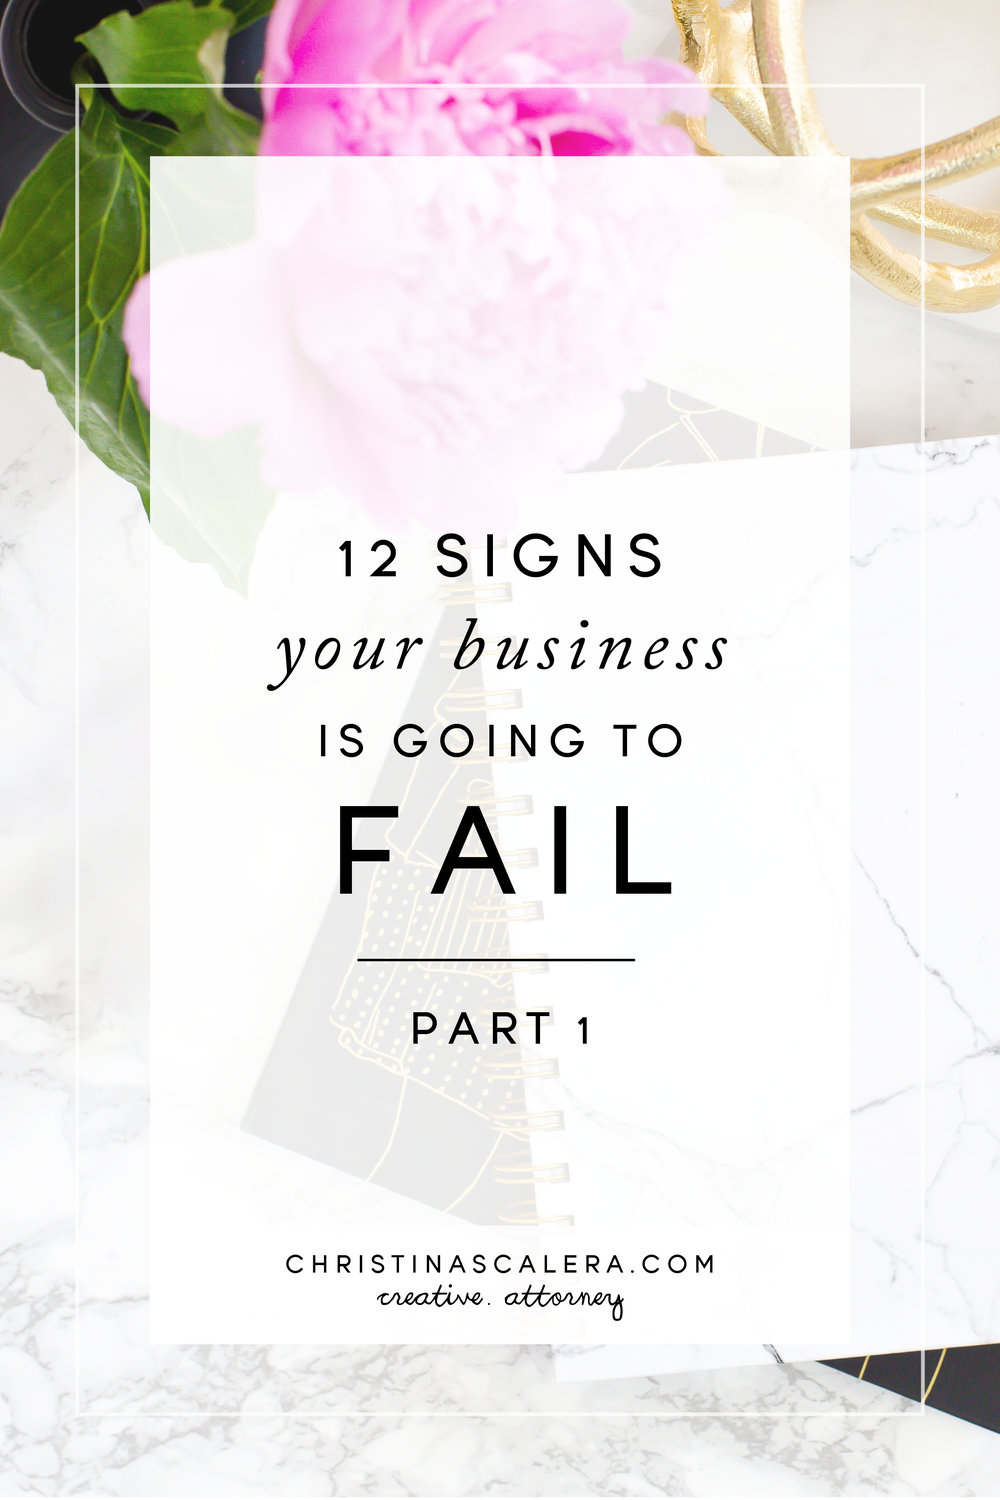 Signs your business is going to fail + FREE WORKBOOK!